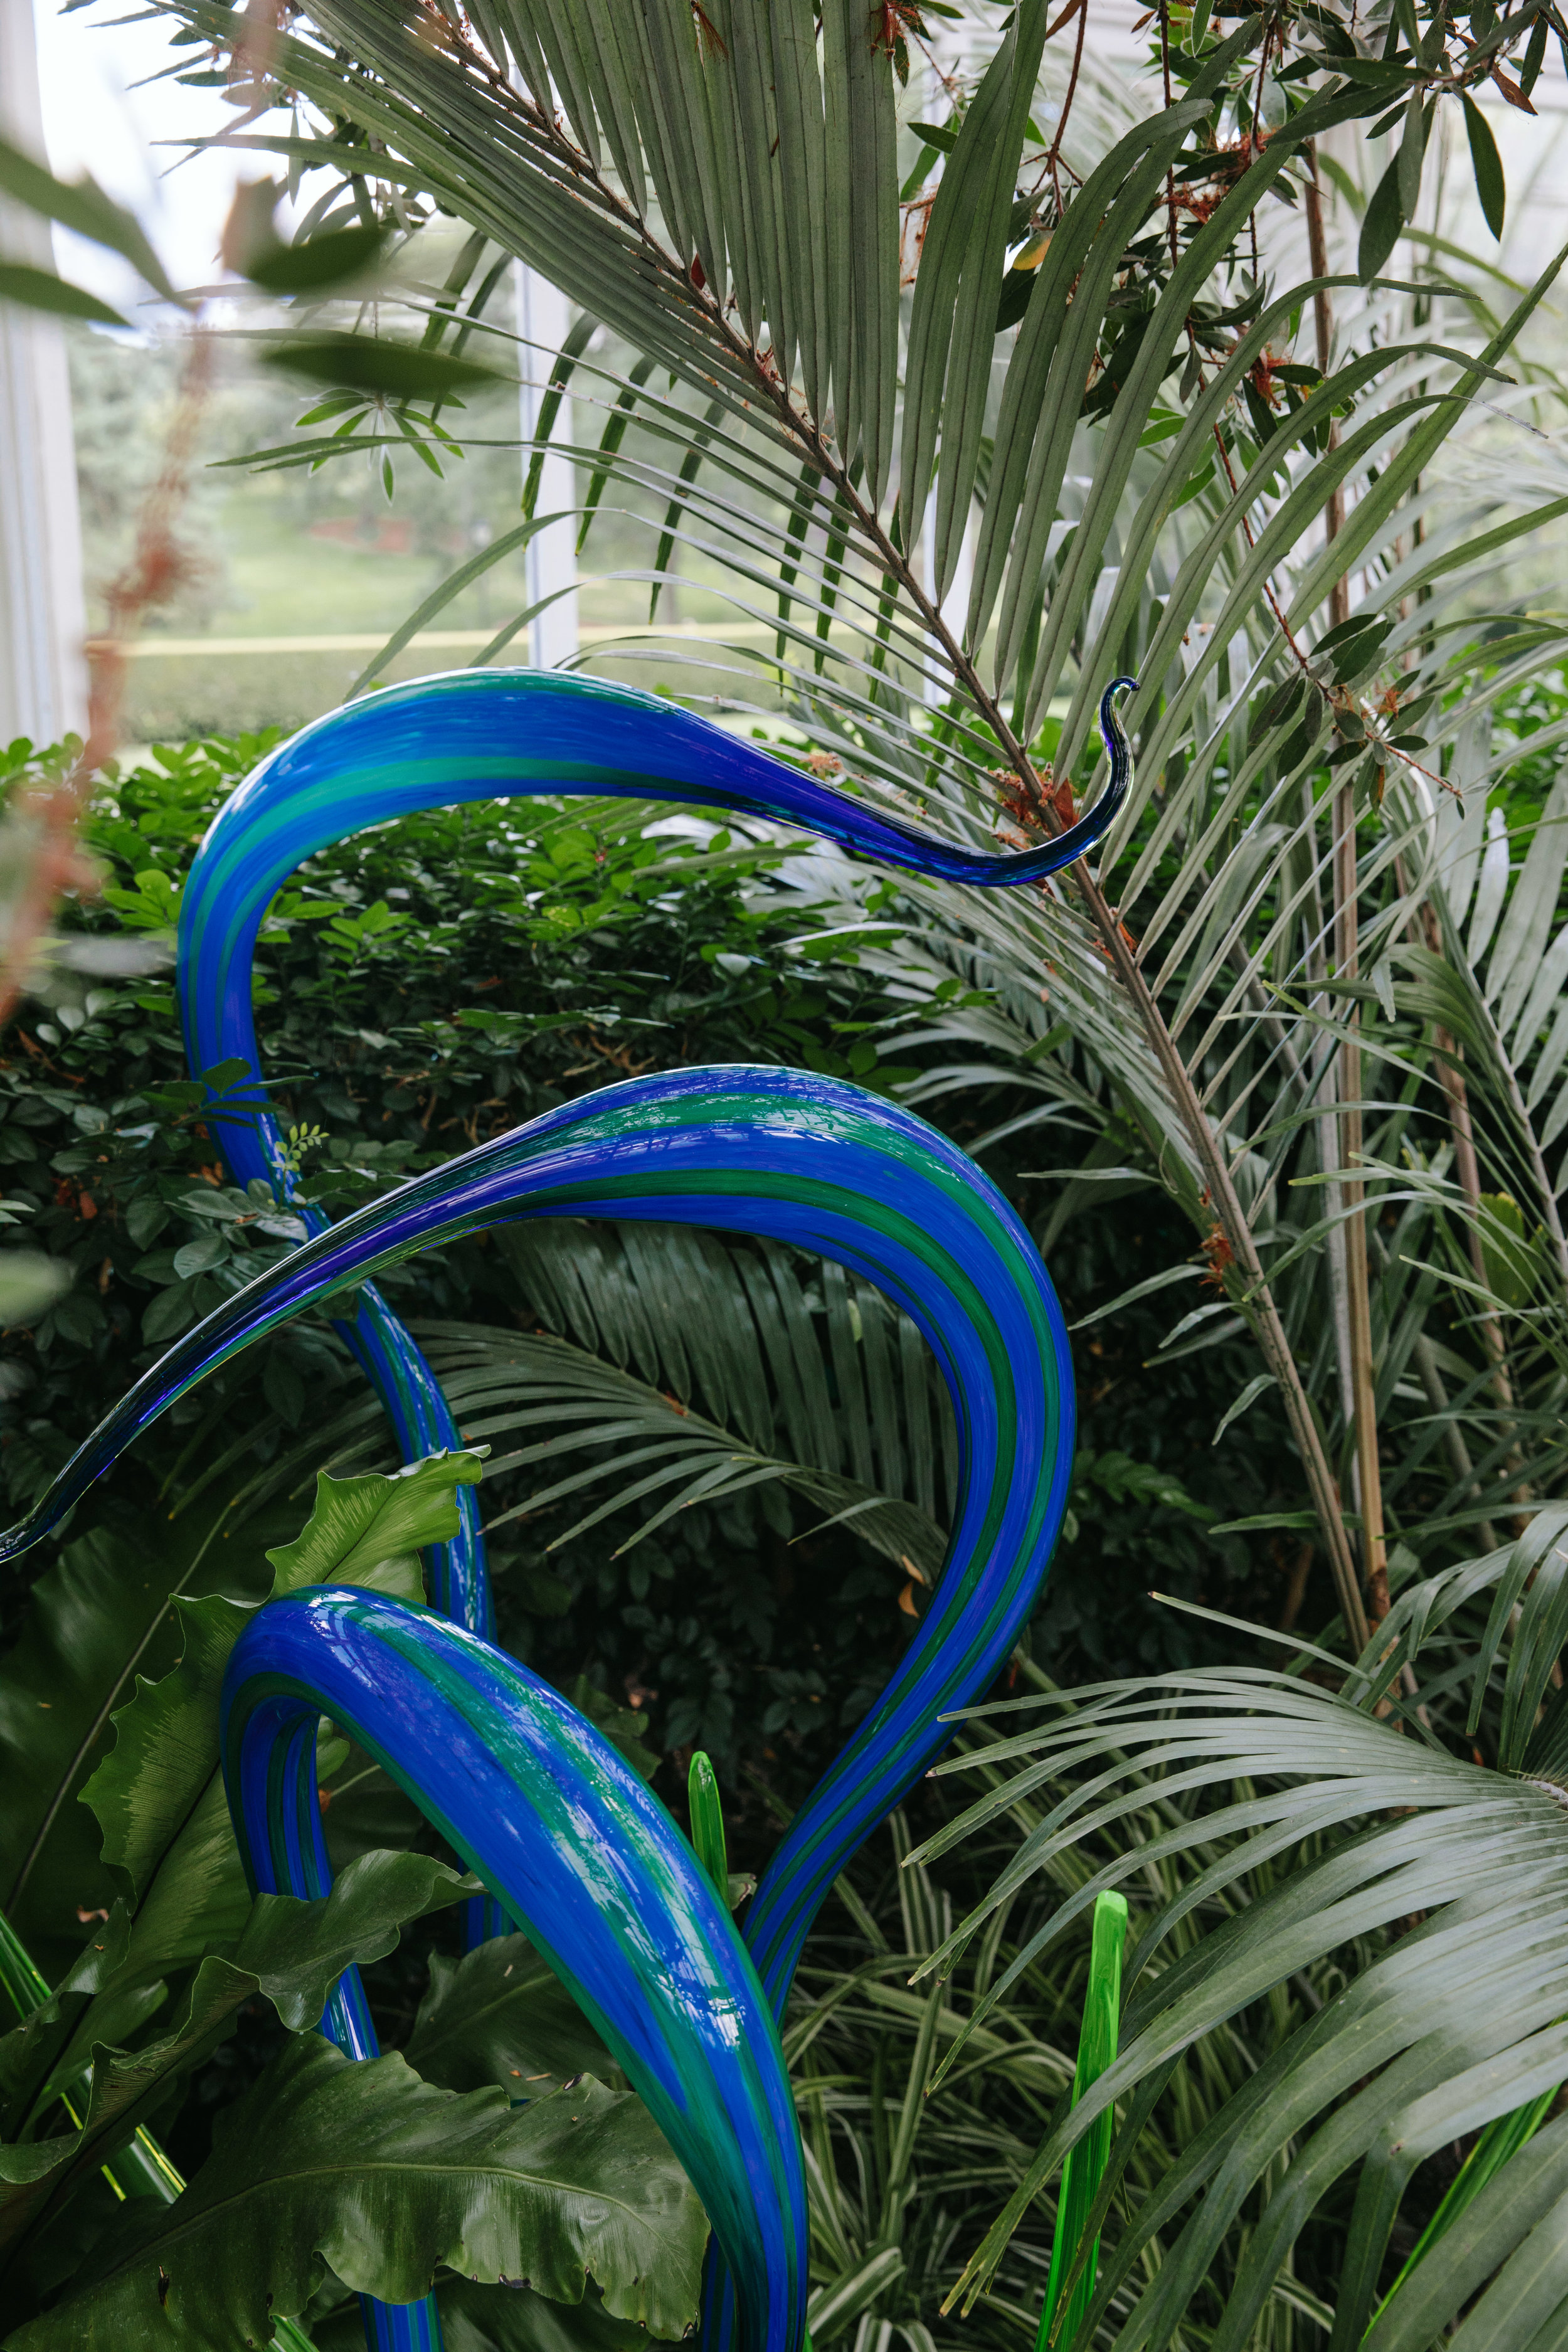 CHIHULY NY BOTANICAL GARDEN_BRIAN SAMUELS_AUGUST 2017-7310.jpg